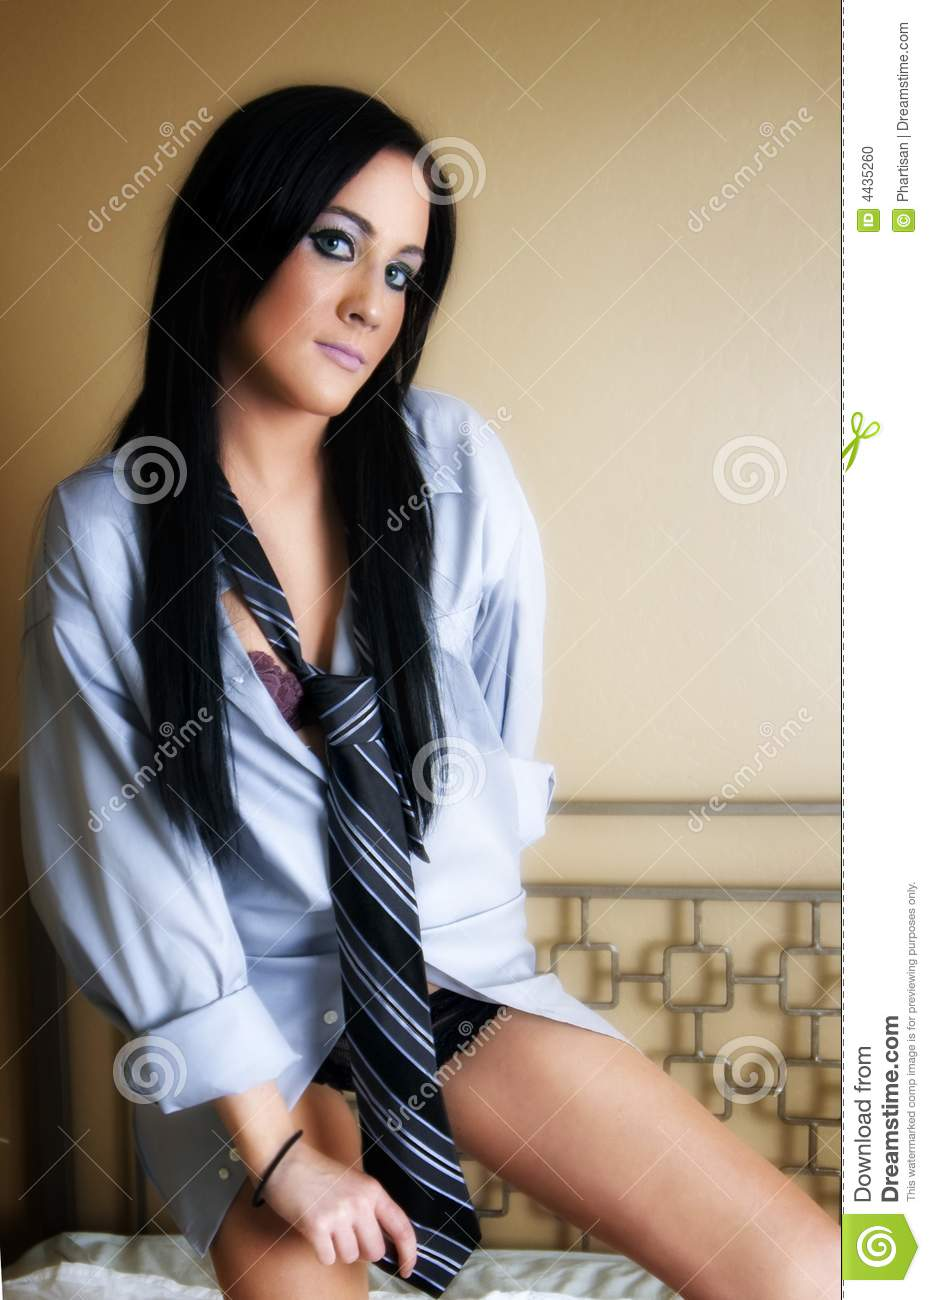 Woman Wearing Mens Shirt And Tie Stock Photo Image Of